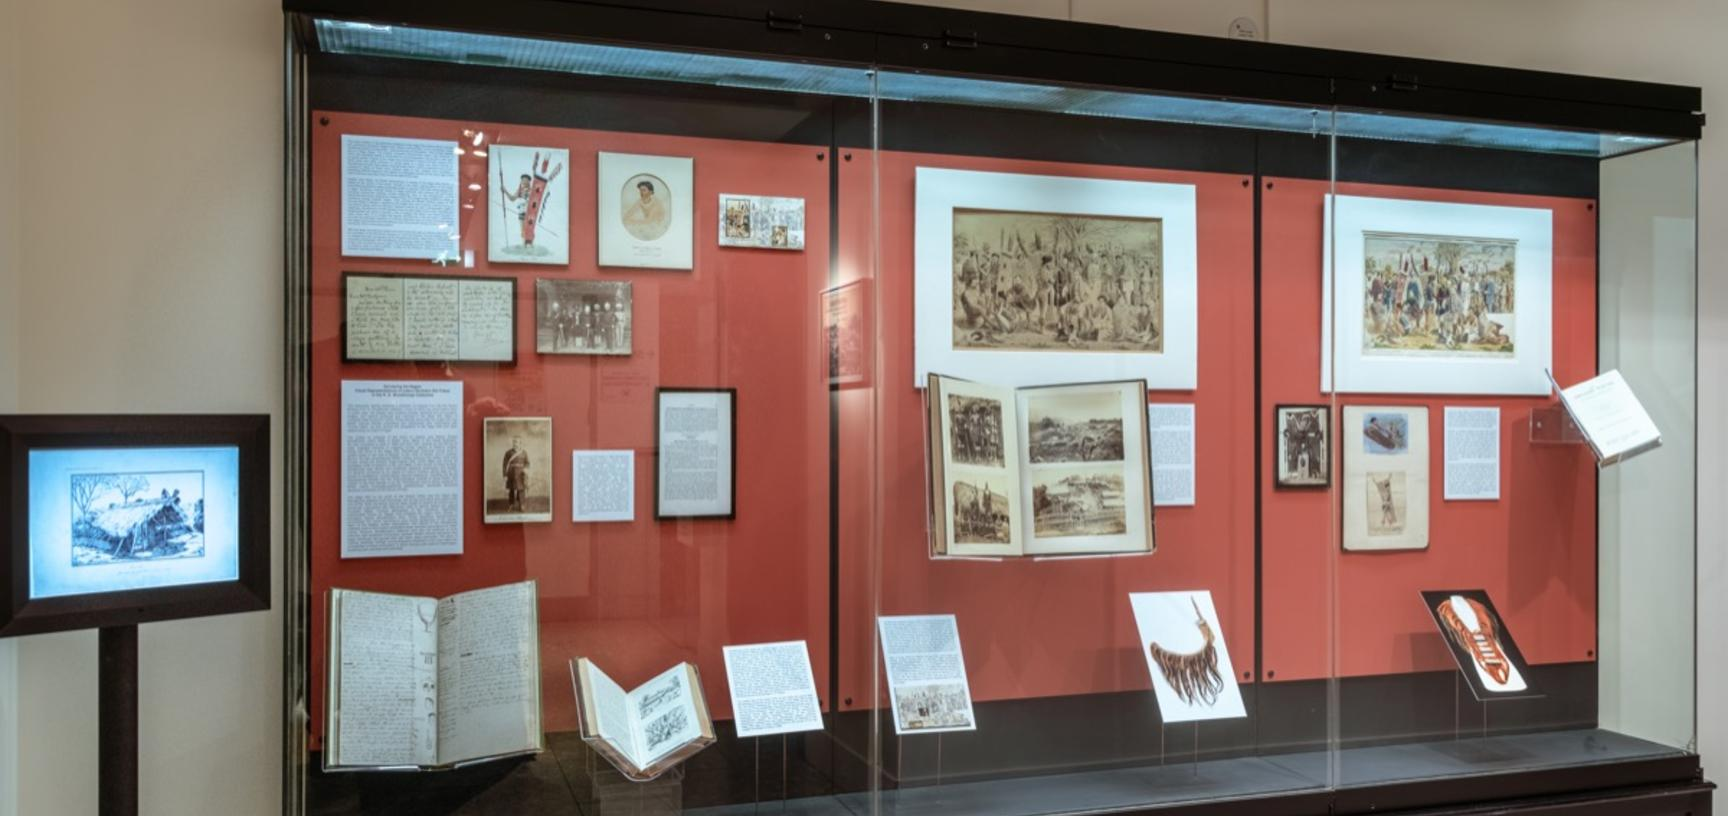 'Surveying the Nagas: Visual Representations of India's Northern Hill-Tribes in the R. G. Woodthorpe Collection', Pitt Rivers Museum, University of Oxford, 12 November 2018 to 19 May 2019.